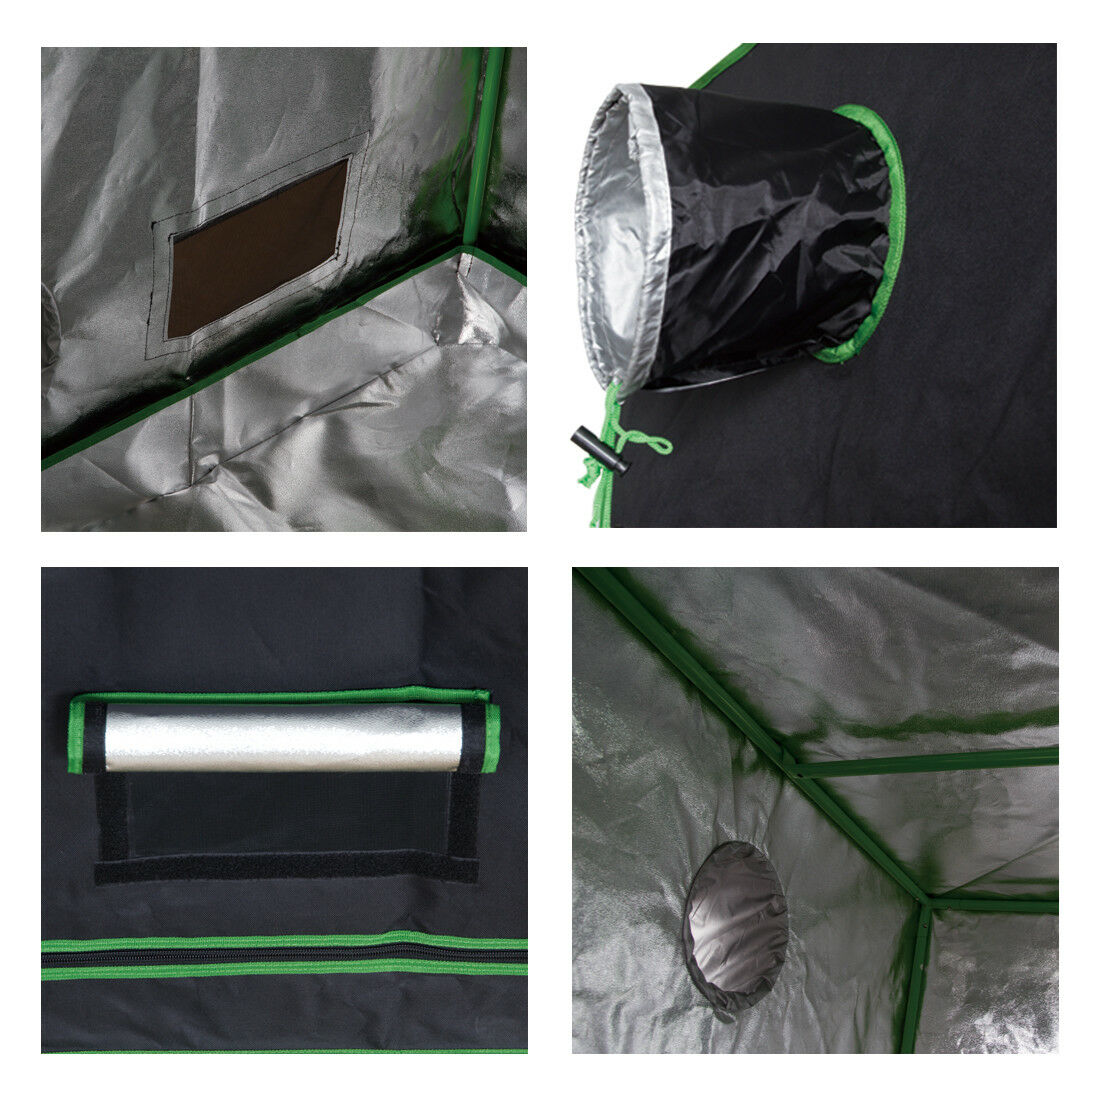 Growing Tents with Openings for exhaust fans